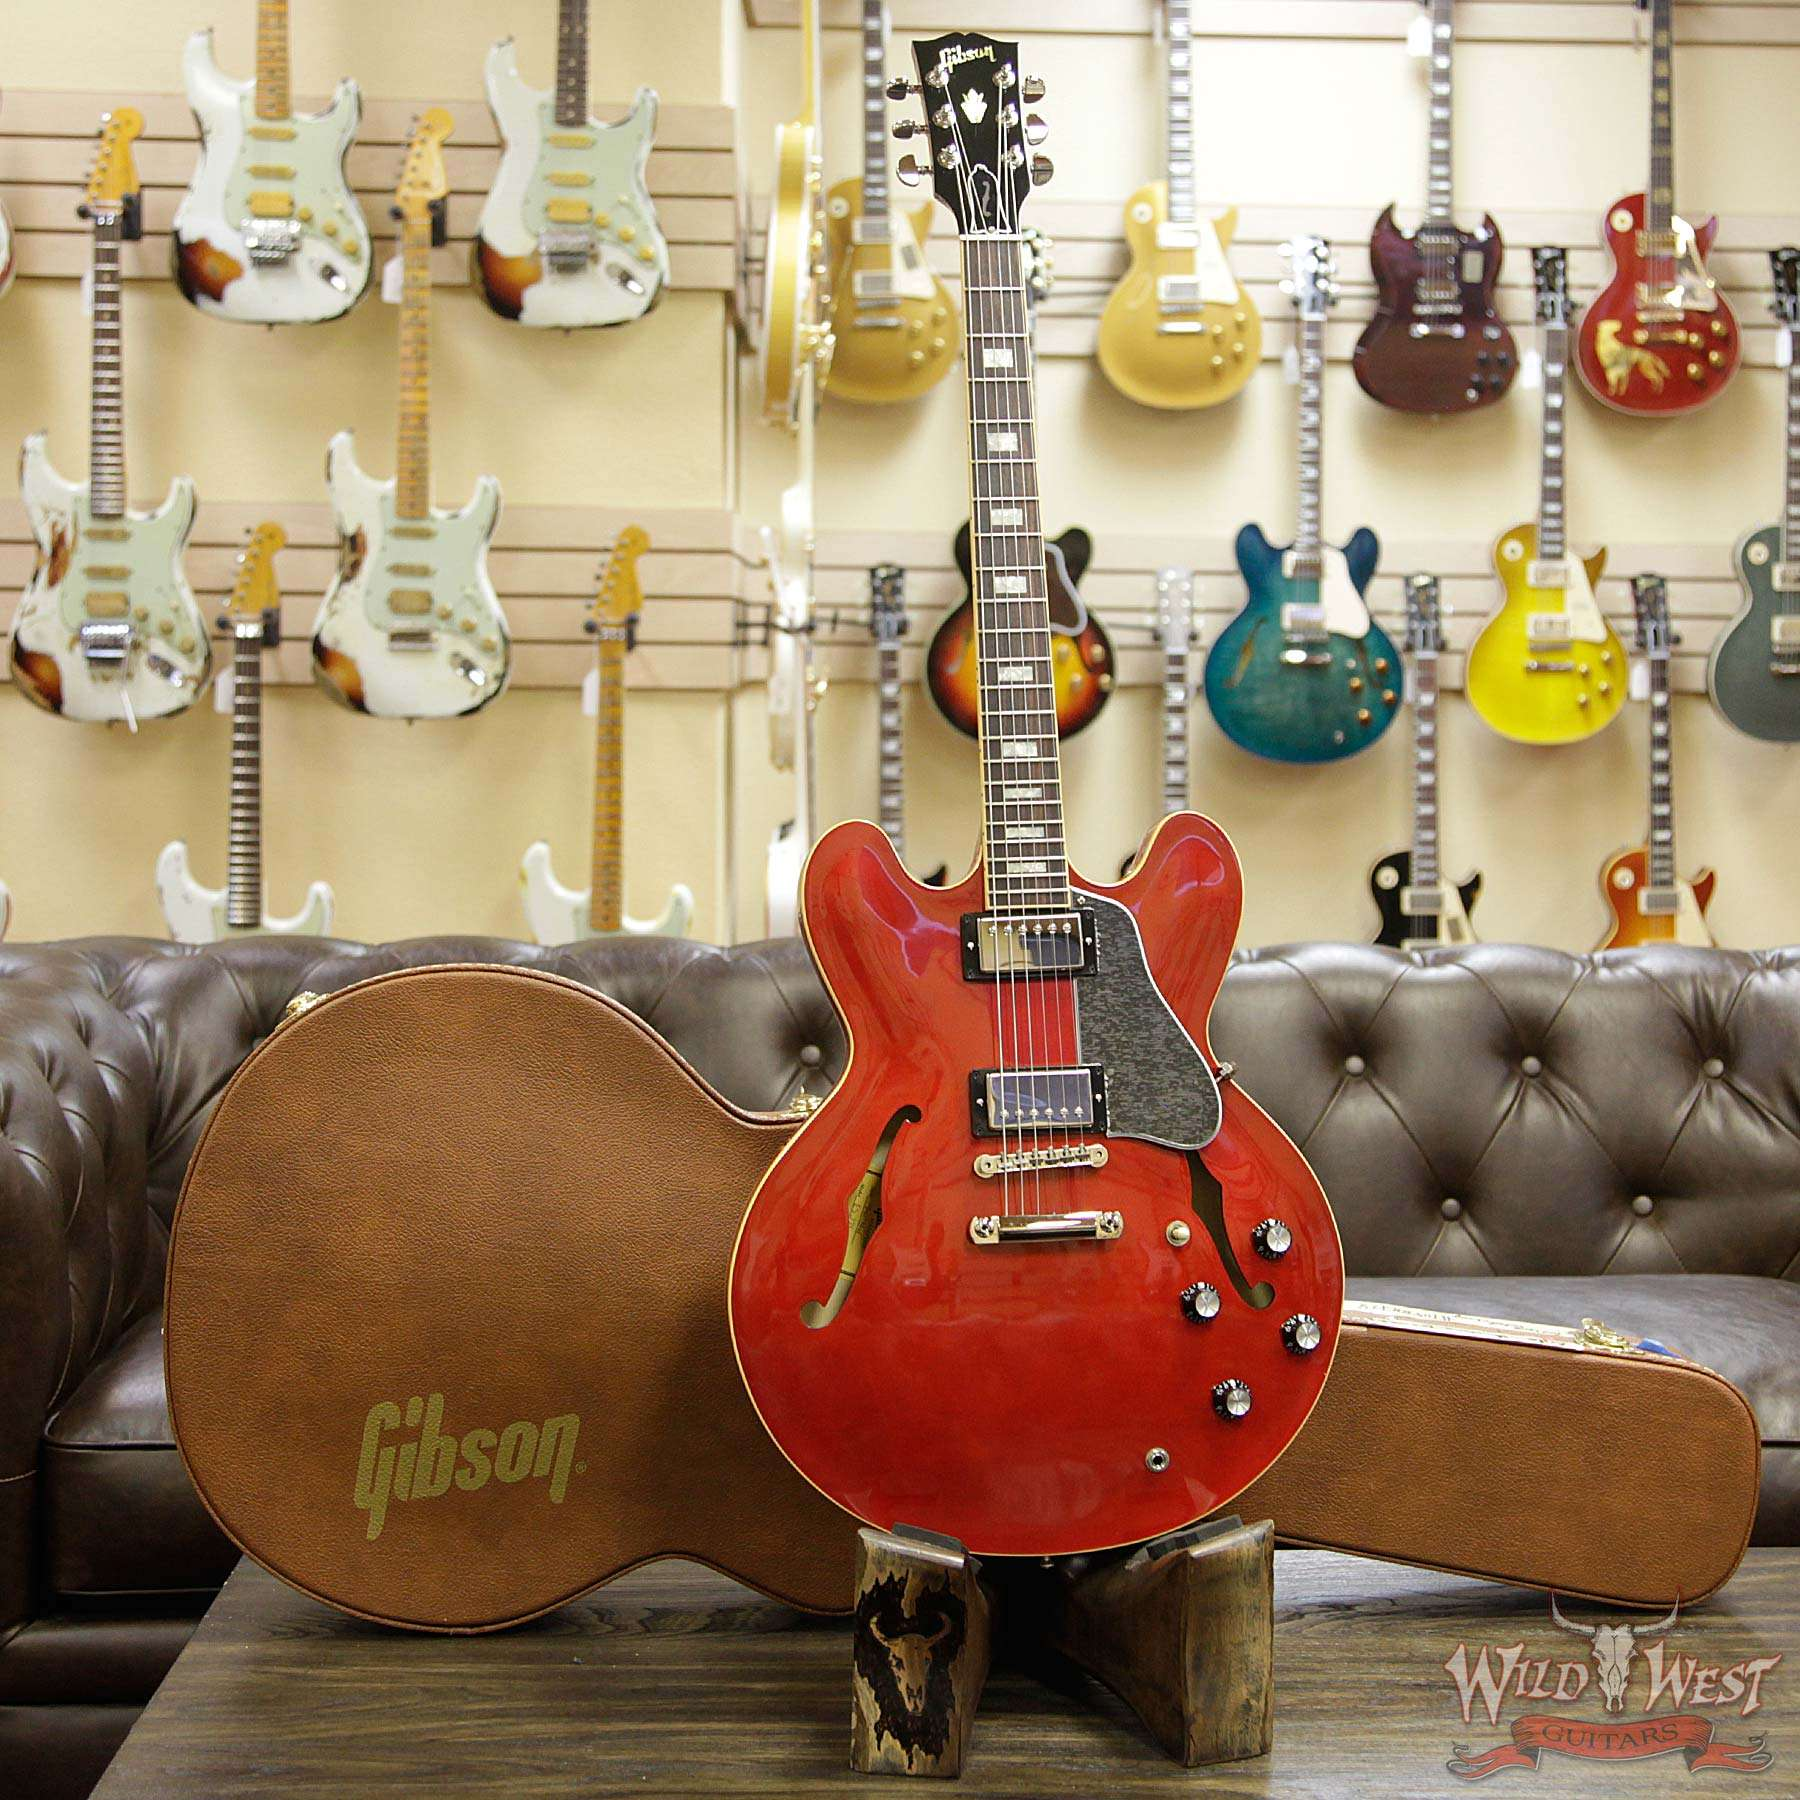 Gibson Memphis Es 335 Traditional 2018 Antique Faded Cherry Wild Two Tone Controls Typical For Les Paul Sg And Many Other Gibsons West Authentic